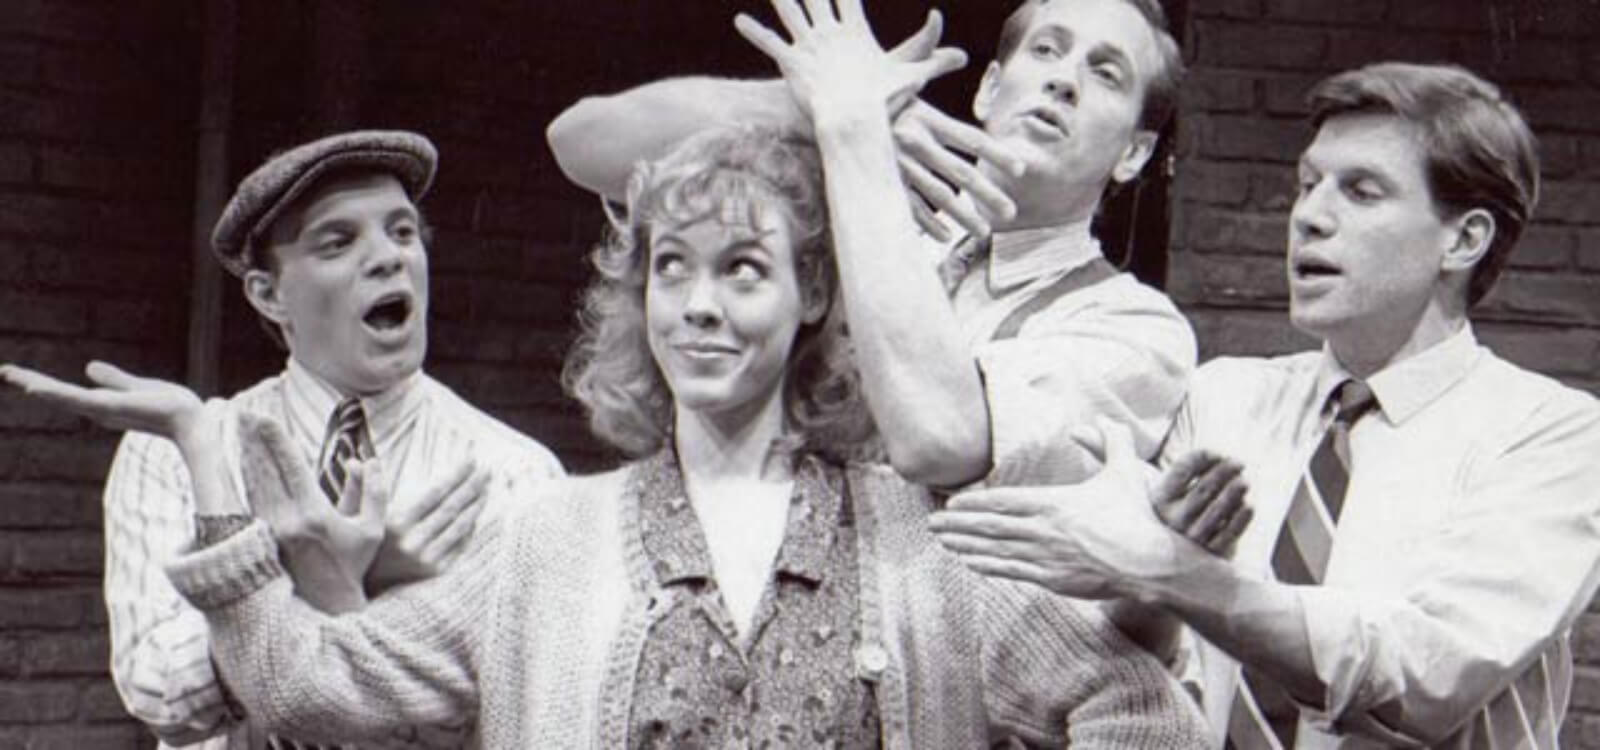 Flora (Veanne Cox) stands in the center with the boys gesturing around her in SONG